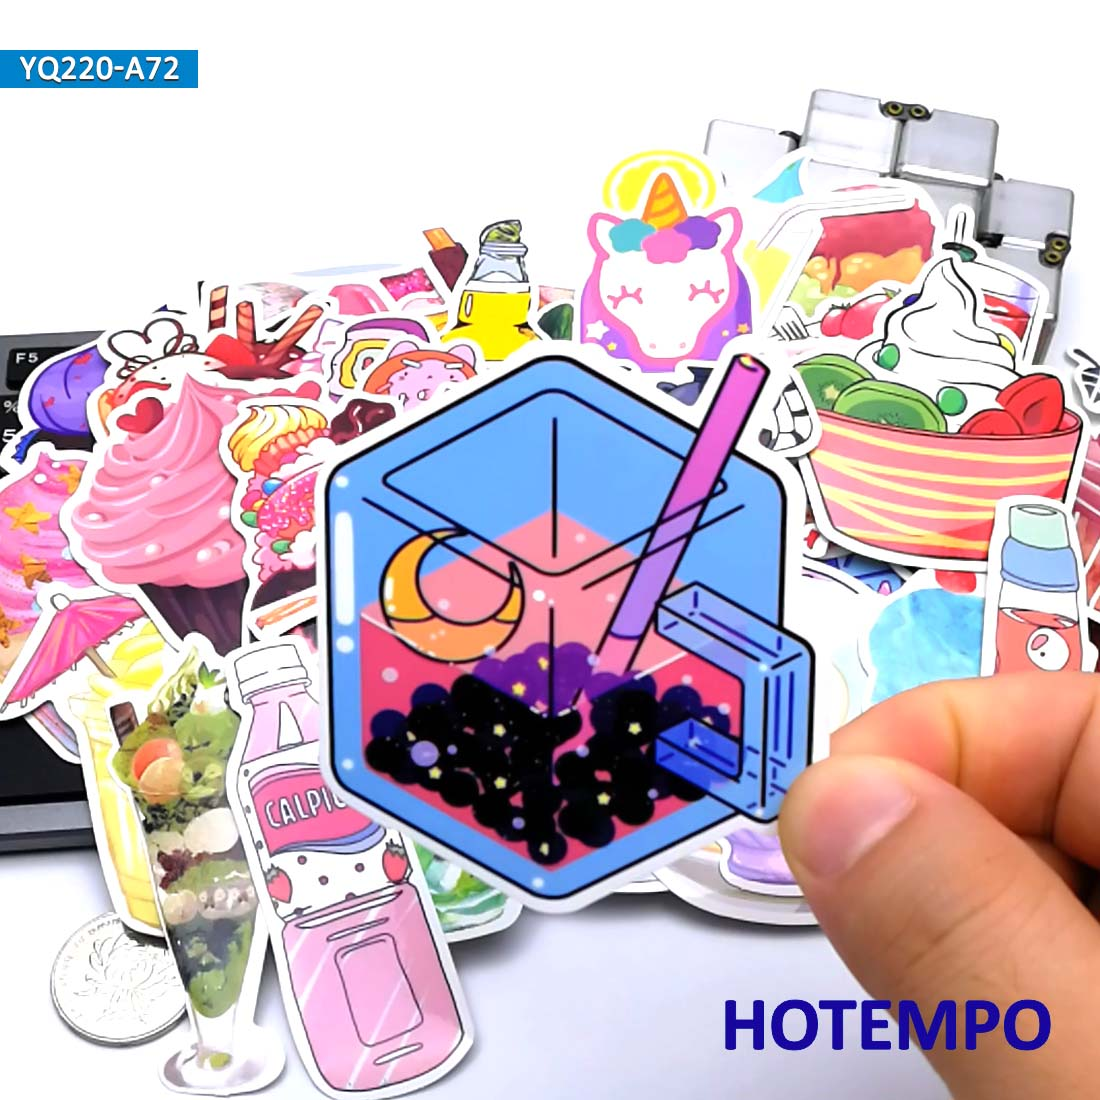 70pcs Cupcake Ice Cream Drinks Stickers for Girl Kids DIY Letter Diary Scrapbooking Stationery Mobile Phone Laptop Bike